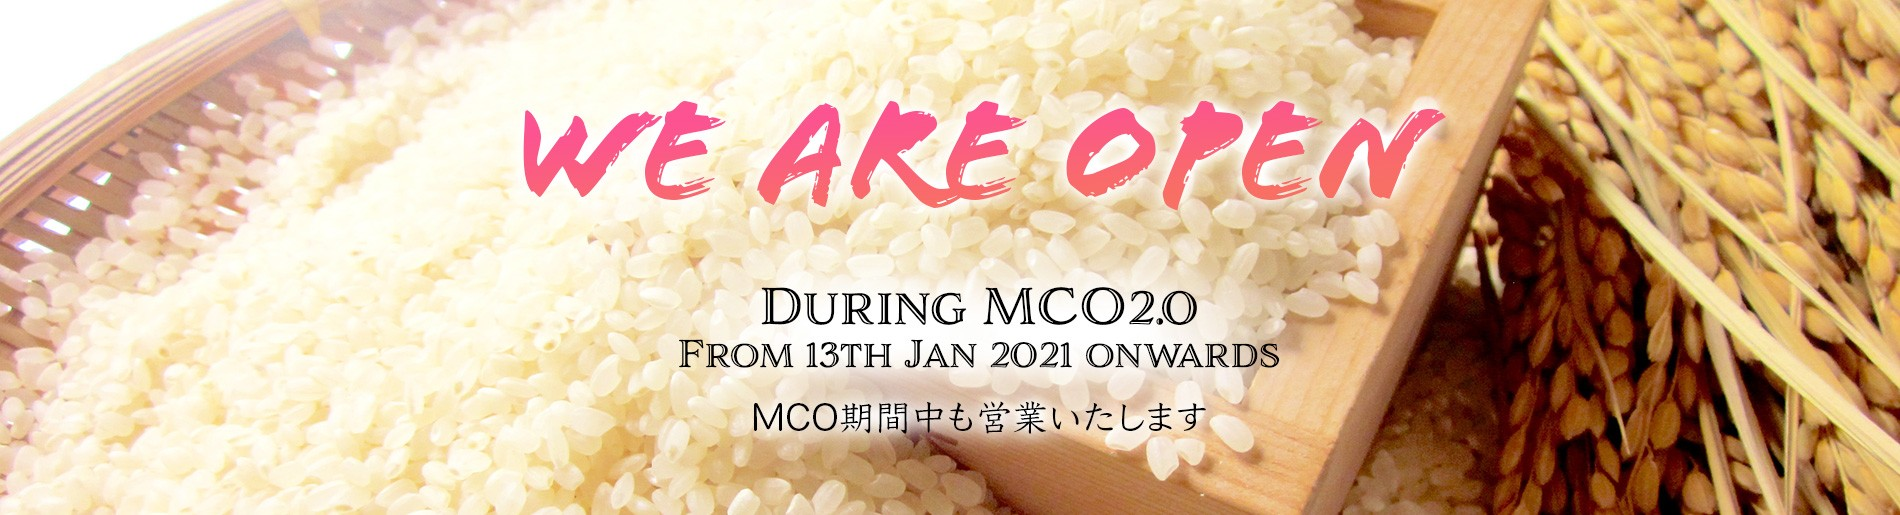 We are open during MCO 2.0